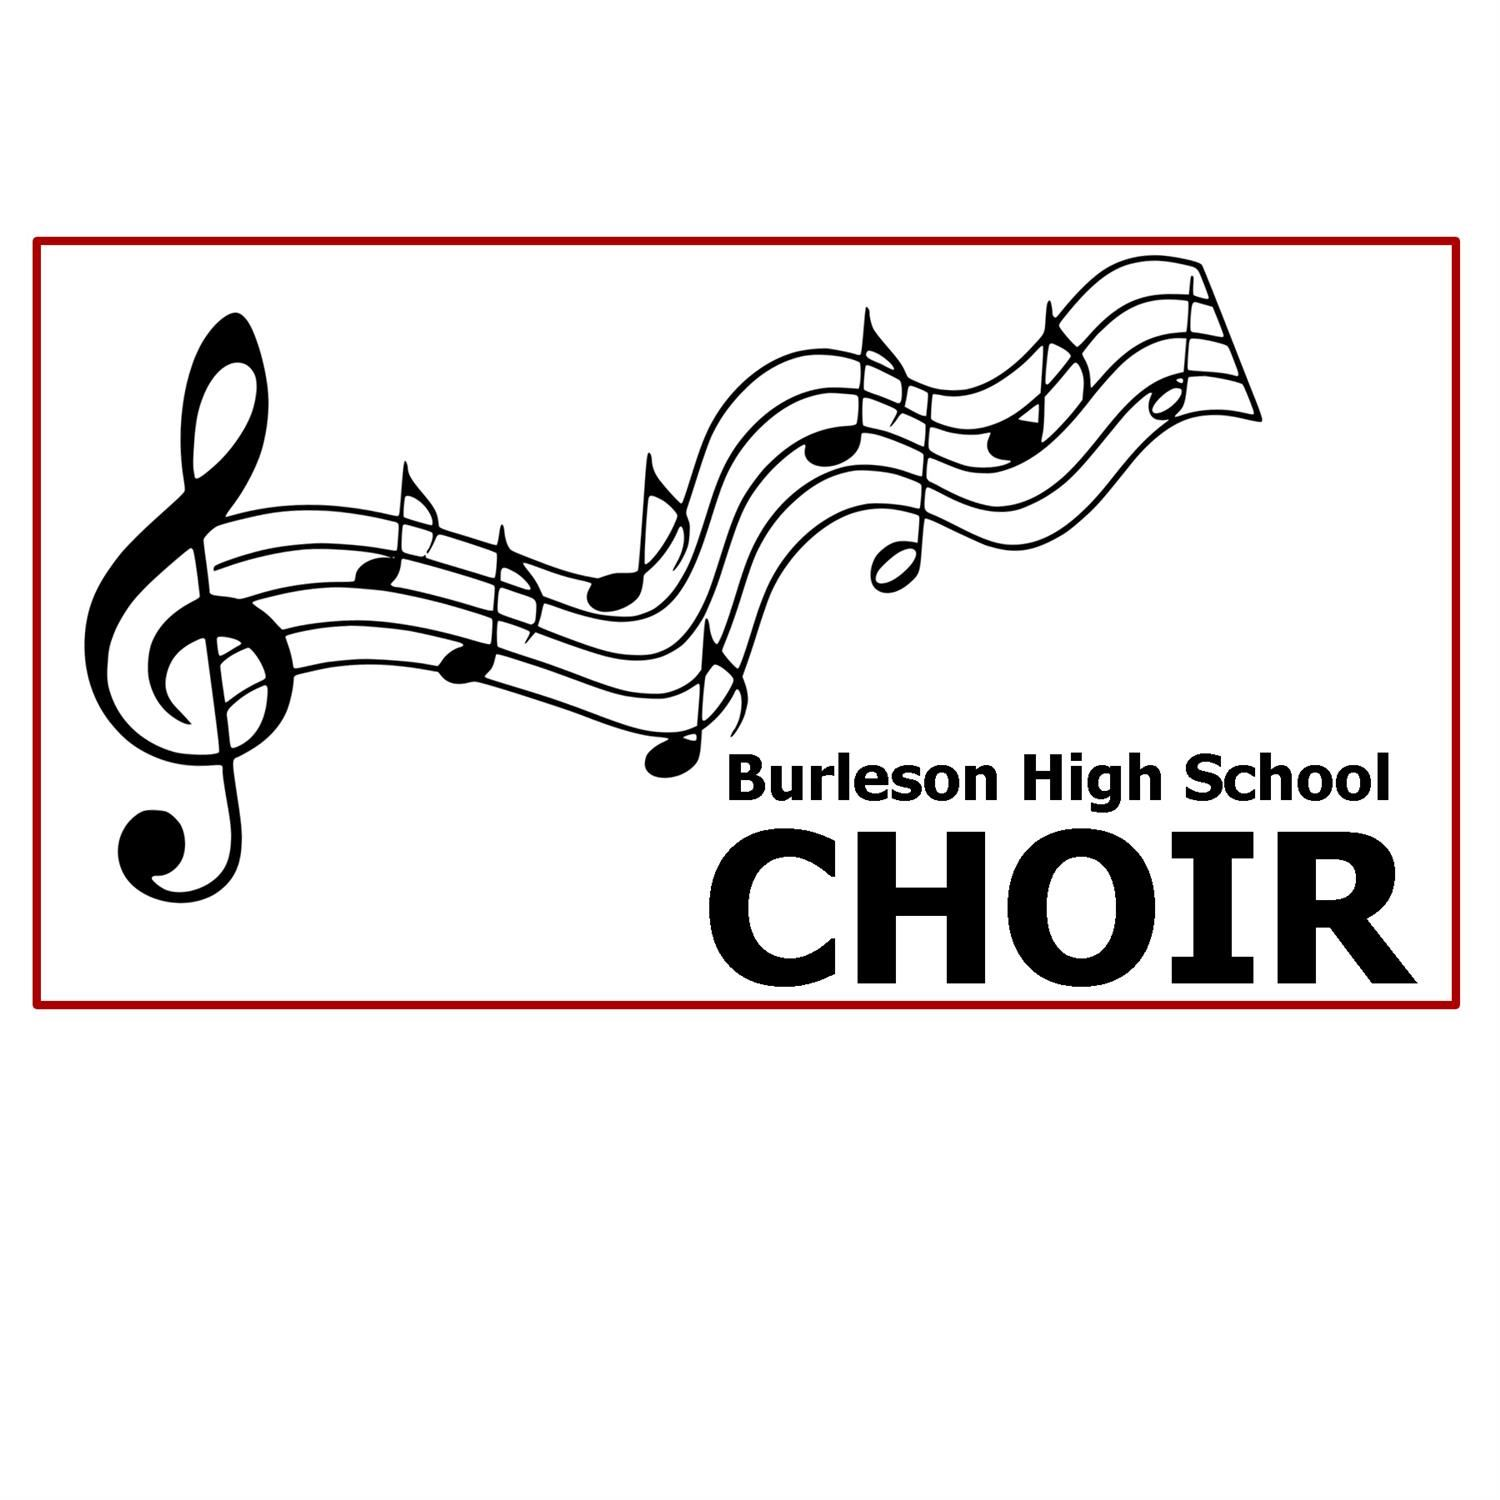 Music notes text: Burleson High School Choir